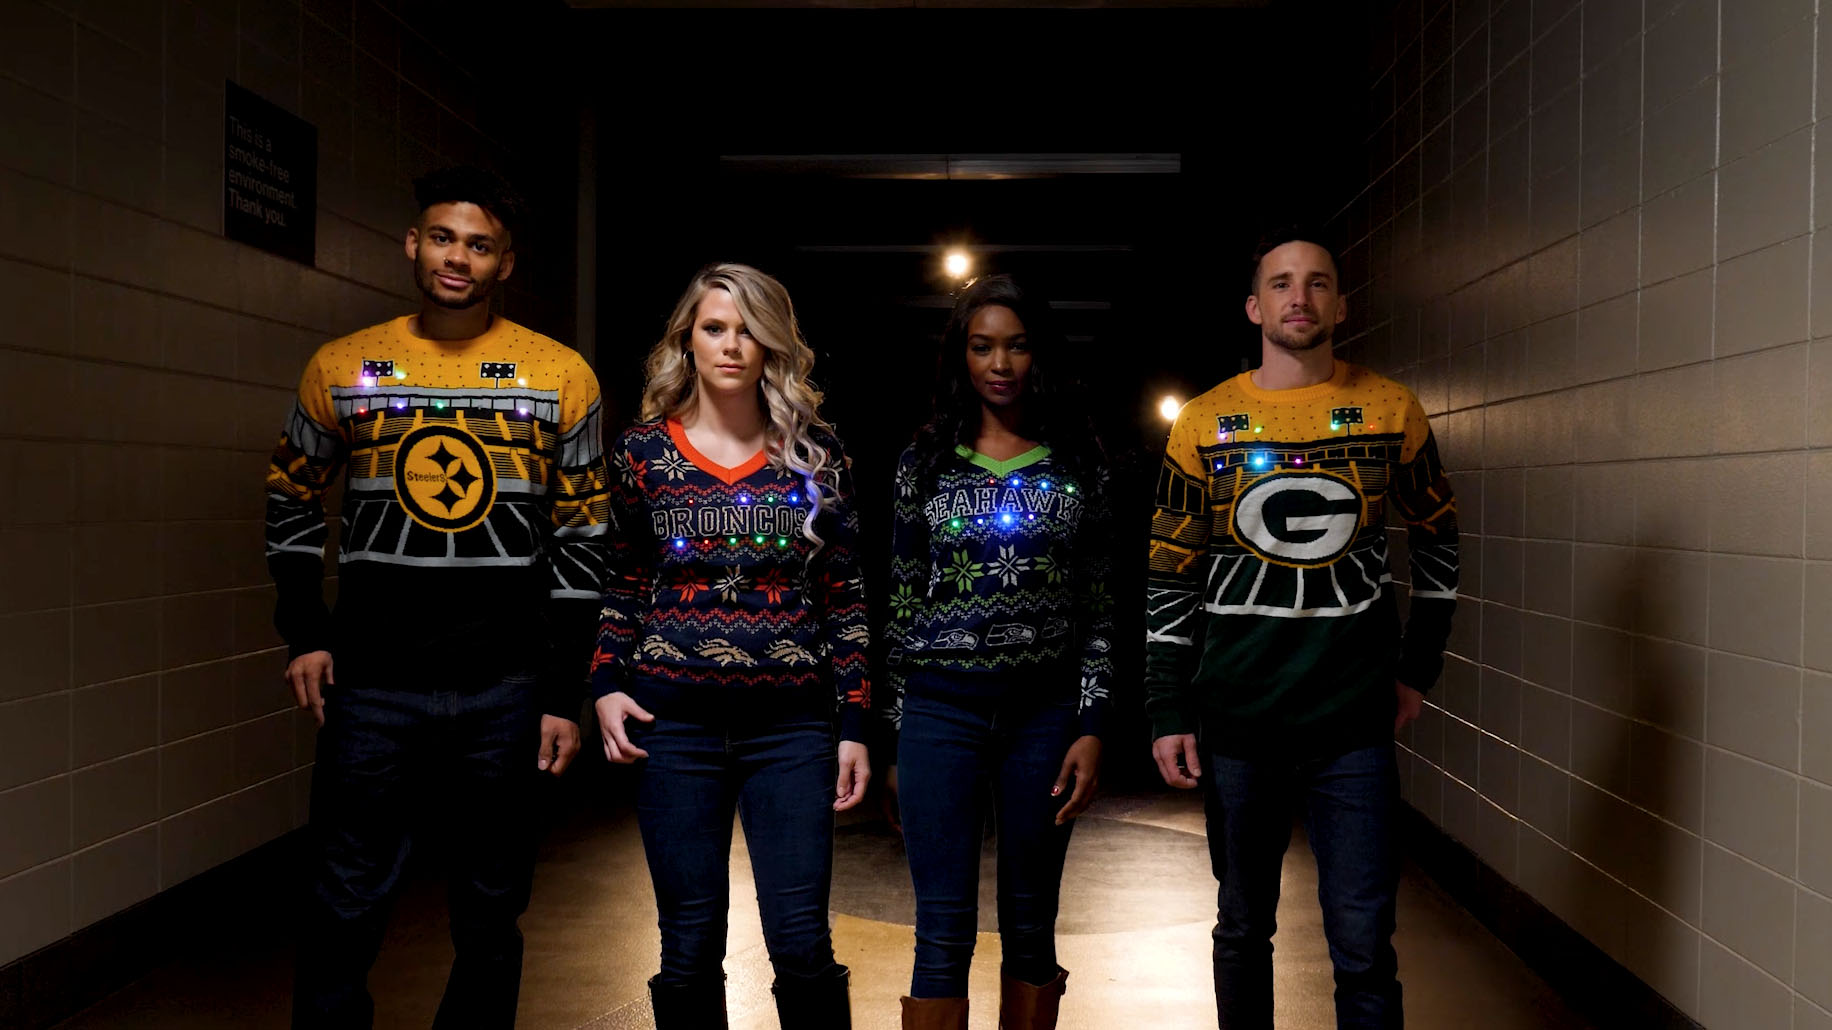 Philadelphia Eagles Light Up Bluetooth Christmas Sweater